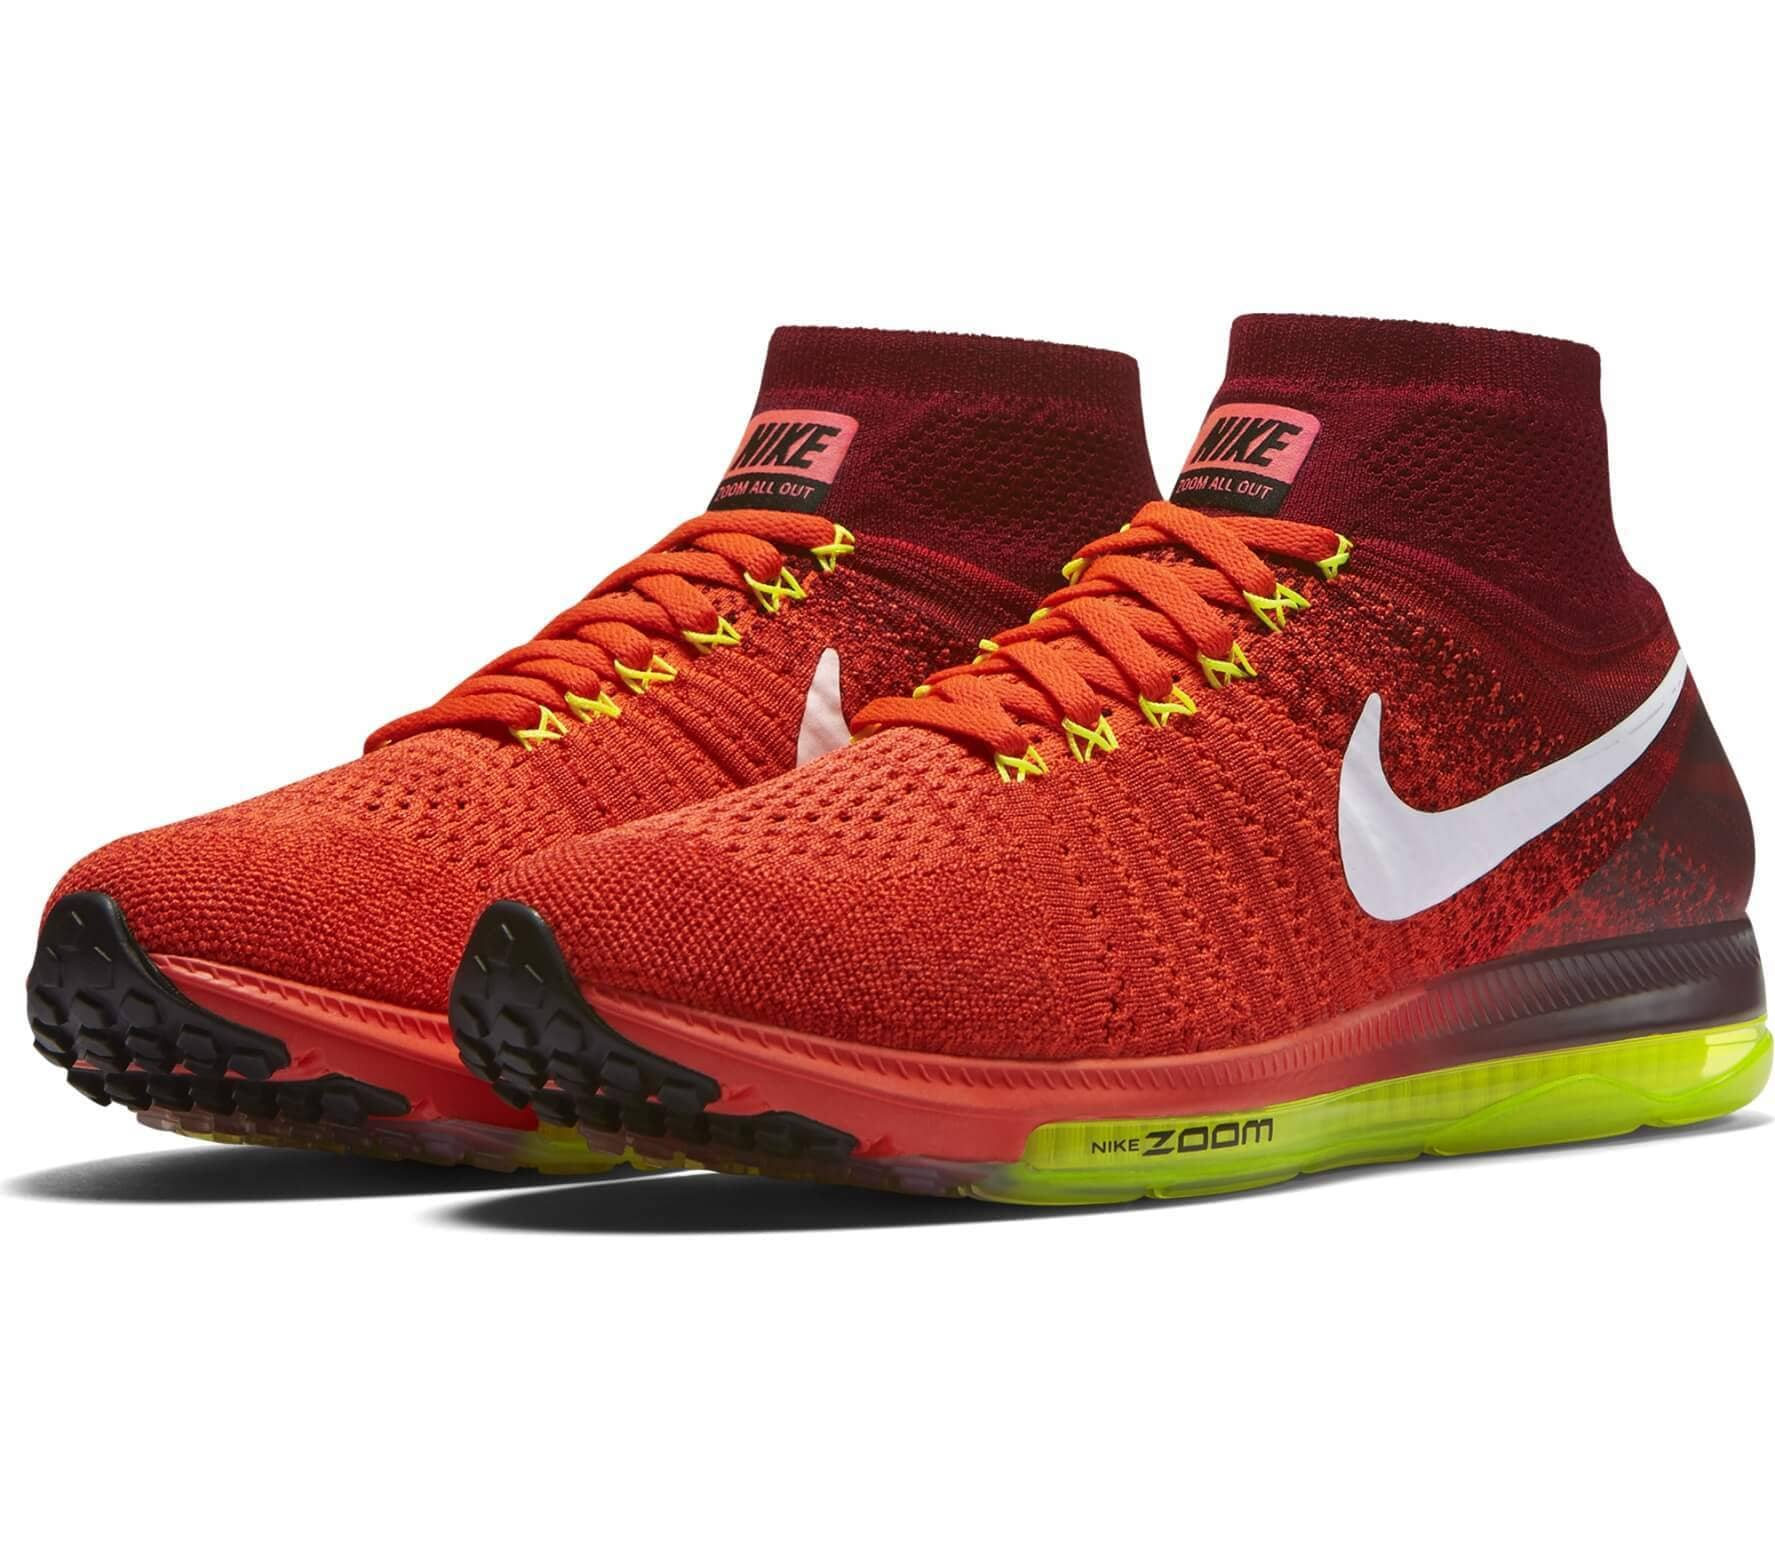 half off 48a43 7a206 ... official nike zoom all out flyknit womens running shoes orange white  0d9e1 9de4f